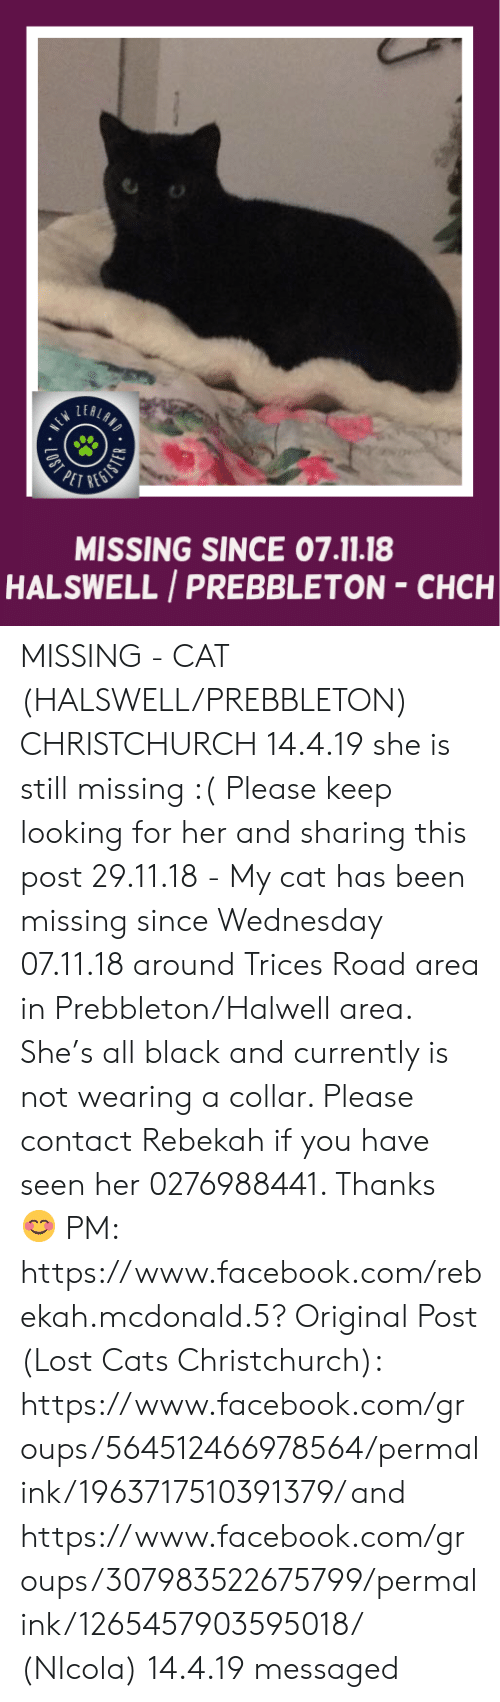 Cats, Facebook, and Memes: LEA  PETR  MISSING SINCE 07.11.18  HALSWELL /PREBBLETON-CHCH MISSING - CAT (HALSWELL/PREBBLETON) CHRISTCHURCH  14.4.19 she is still missing :(  Please keep looking for her and sharing this post 29.11.18 - My cat has been missing since Wednesday 07.11.18  around  Trices Road area in Prebbleton/Halwell area. She's all black and currently is not wearing a collar.   Please contact Rebekah if you have seen her 0276988441. Thanks 😊 PM: https://www.facebook.com/rebekah.mcdonald.5?  Original Post (Lost Cats Christchurch): https://www.facebook.com/groups/564512466978564/permalink/1963717510391379/ and https://www.facebook.com/groups/307983522675799/permalink/1265457903595018/    (NIcola)  14.4.19 messaged